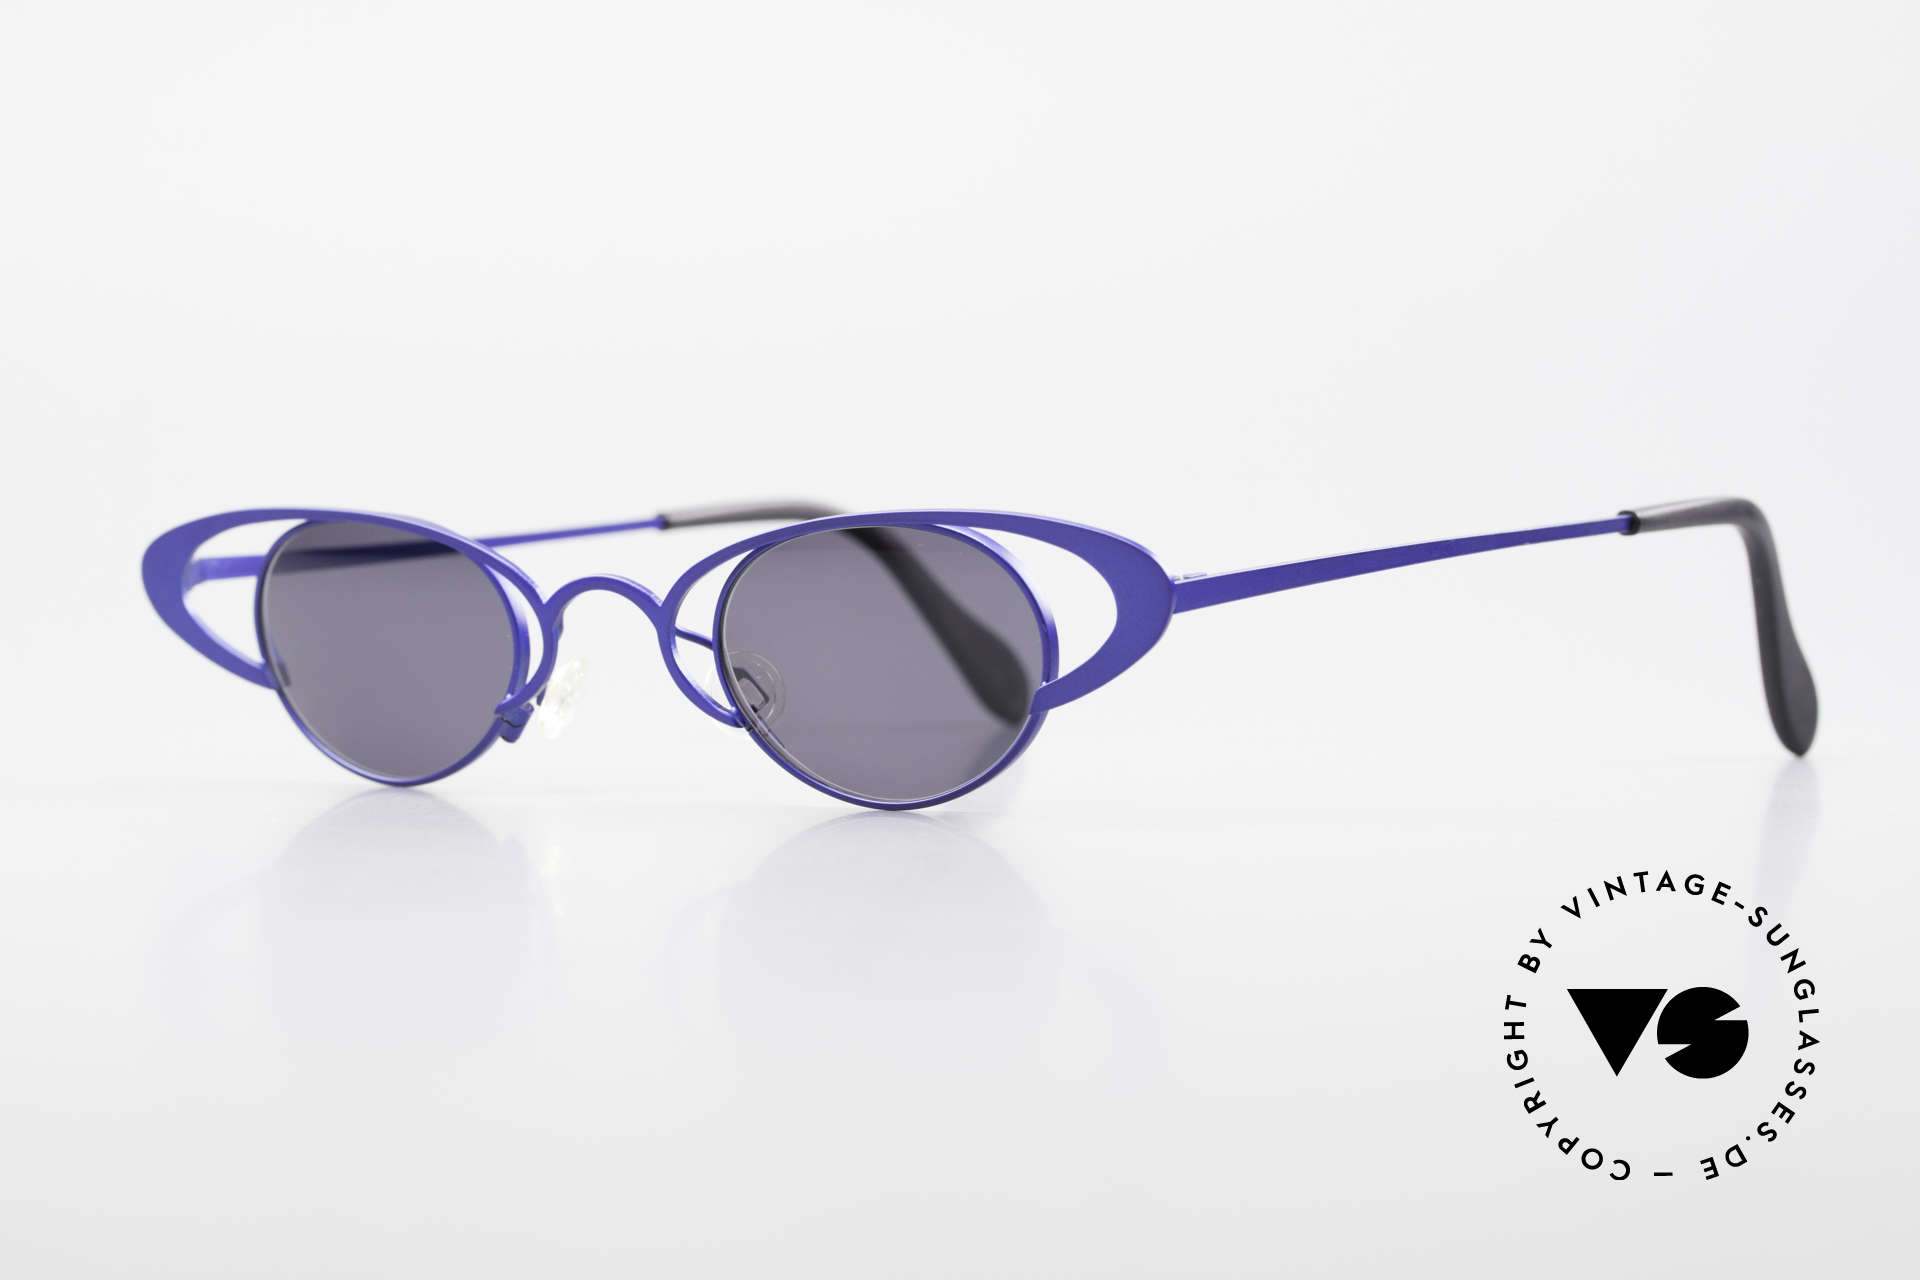 Theo Belgium Venus Enchanting Ladies Sunglasses, made for the avant-garde, individualists, trend-setters, Made for Women